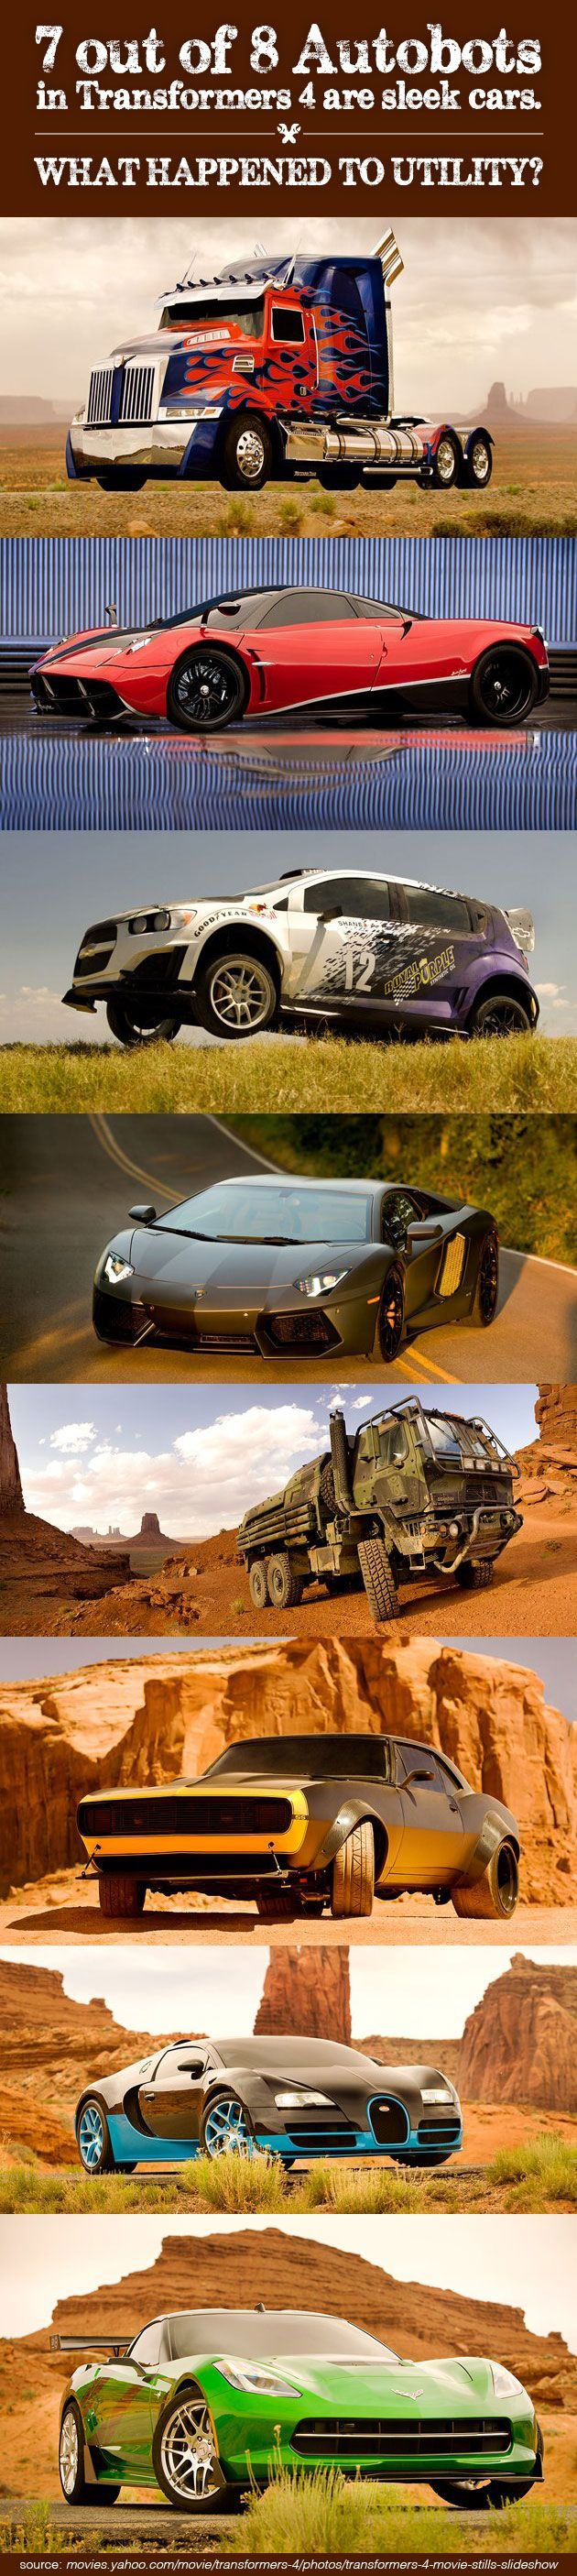 7 out of 8 Autobots in Transformers 4 are sleek cars. What happened to utility? #transformers4